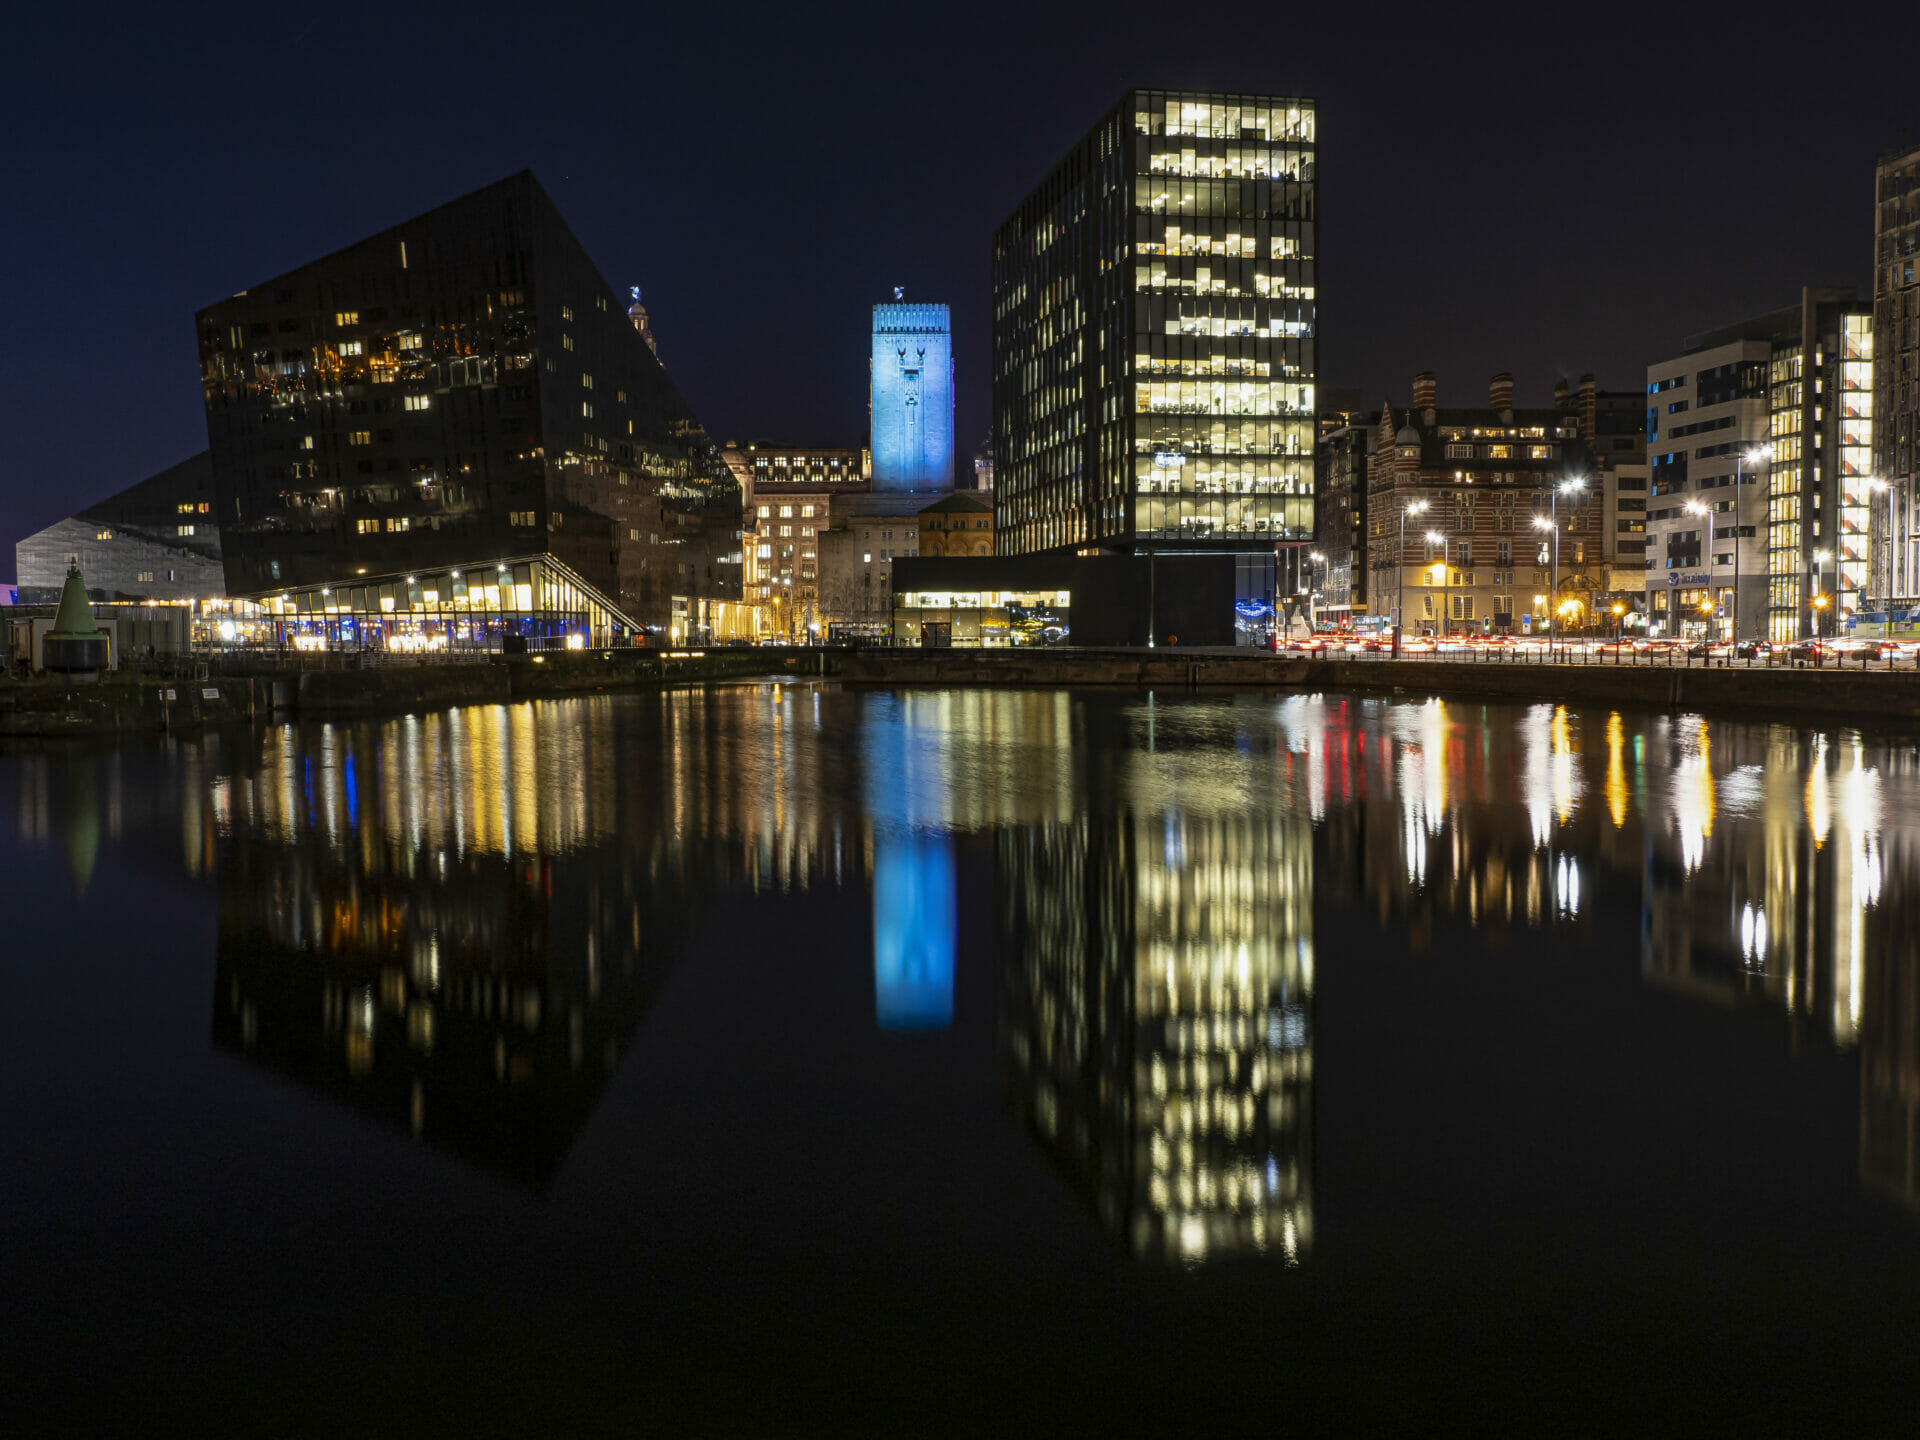 Photo taken at the Albert dock in Liverpool in Low Light - Showcasing the City lights - Taken on a Welshot Photographic Workshop - Low Light and Long Exposure at the Liverpool Christmas Markets